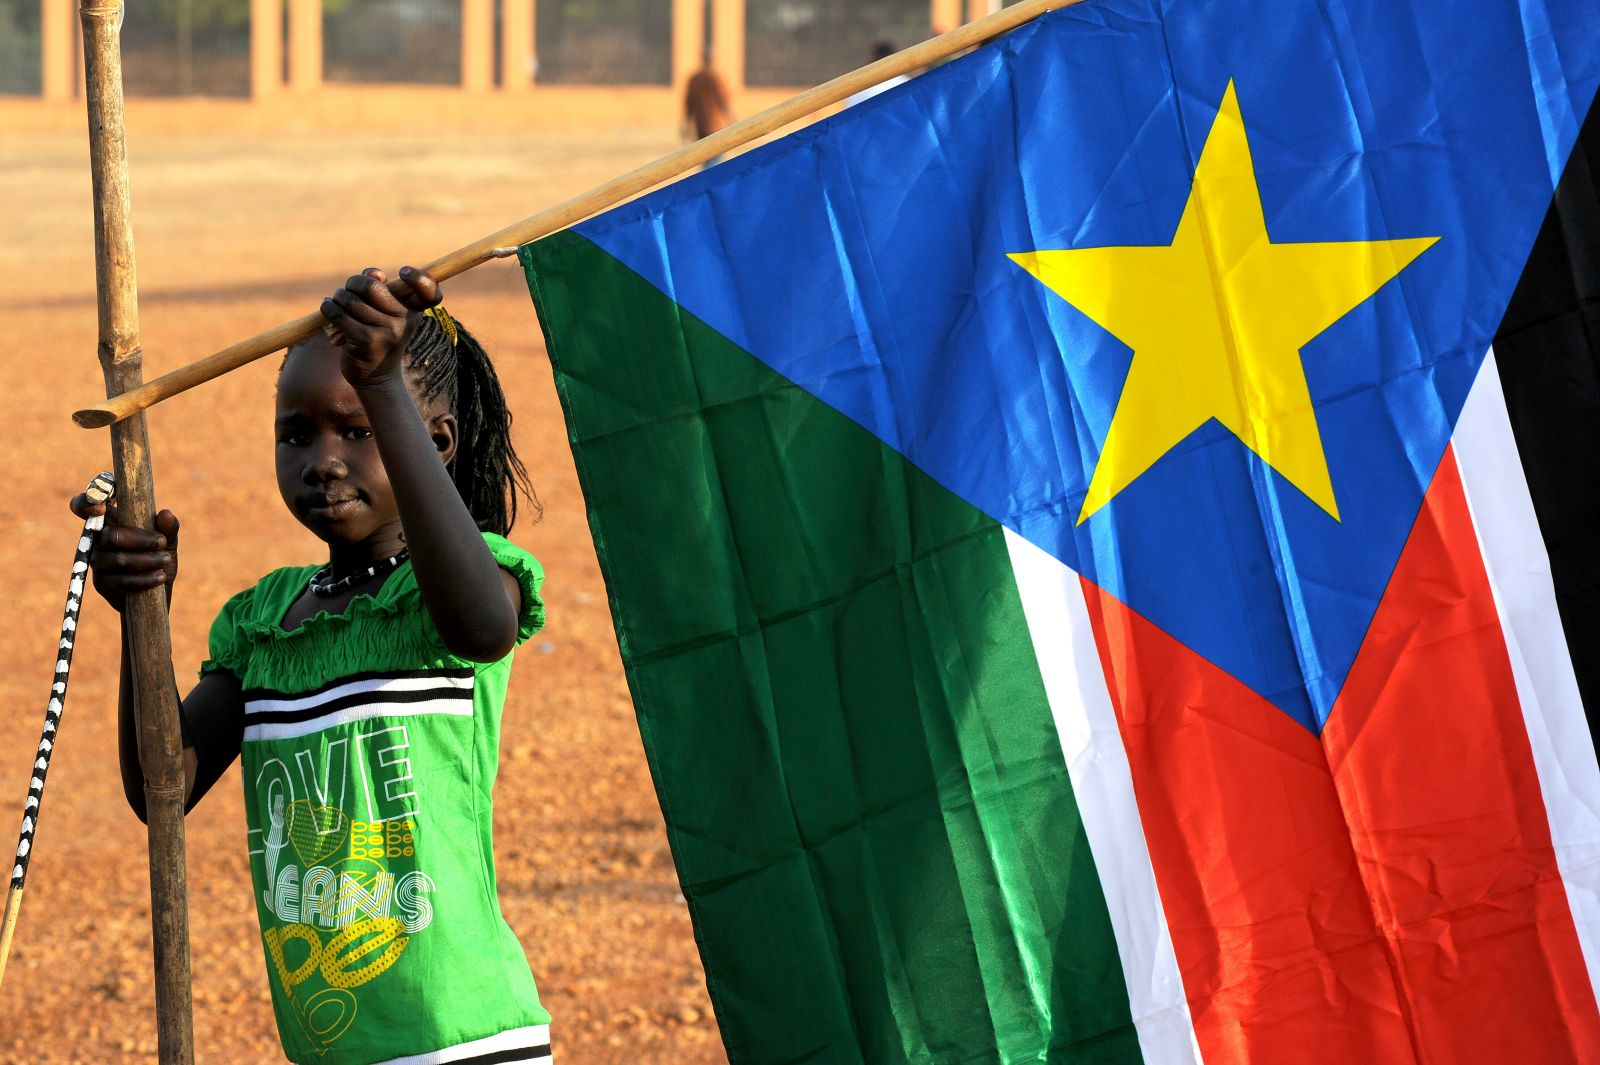 A_young_girl_hangs_the_South_Sudan_flag_(5925619011).jpg